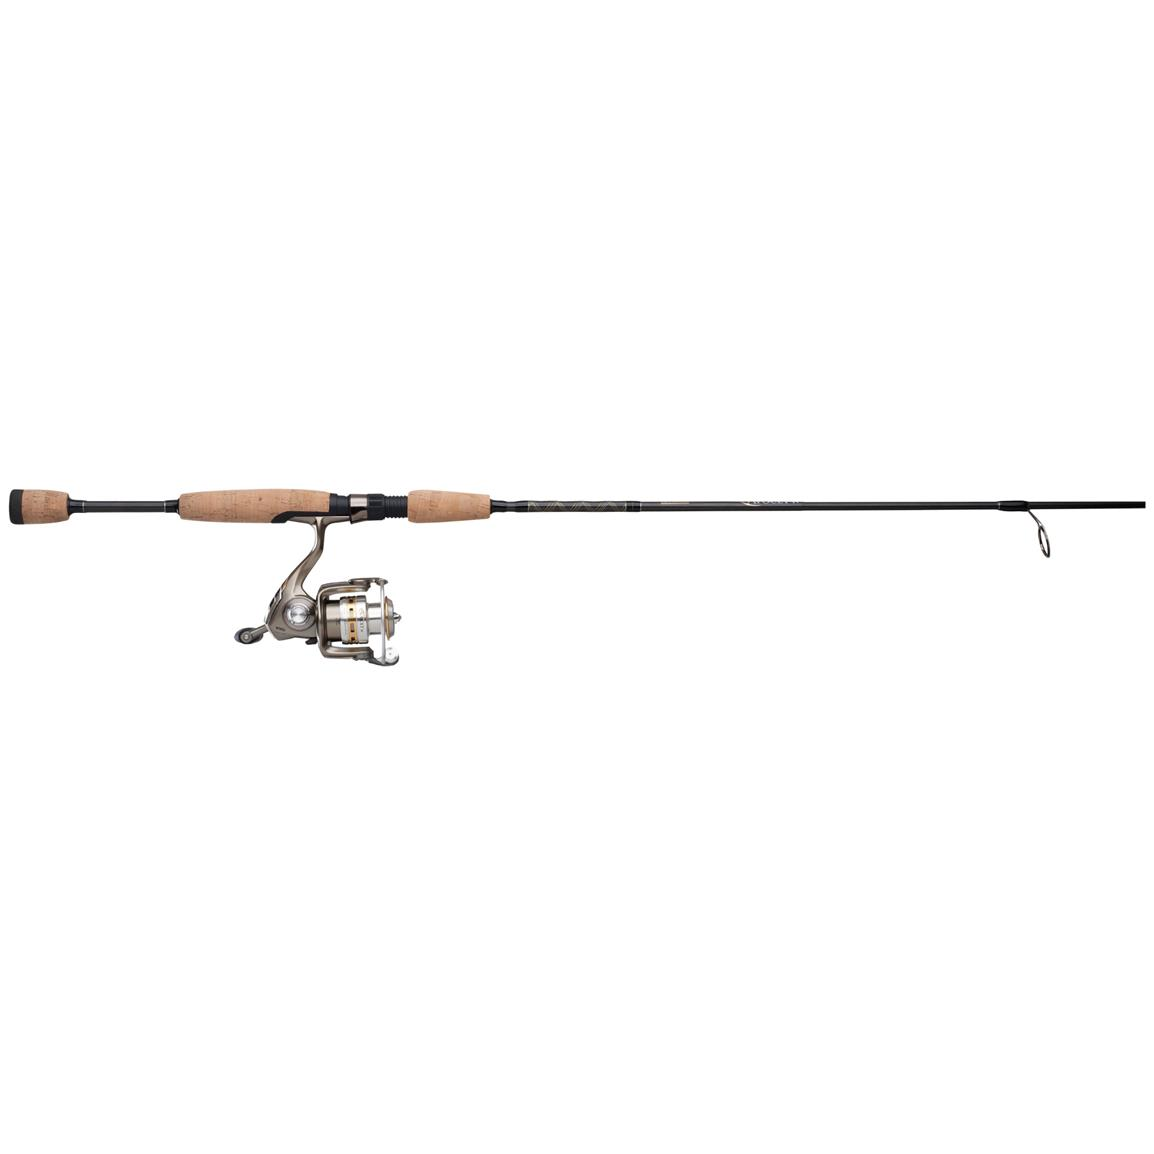 Mitchell® Avocet IV Gold Rod & Reel Spinning Combo